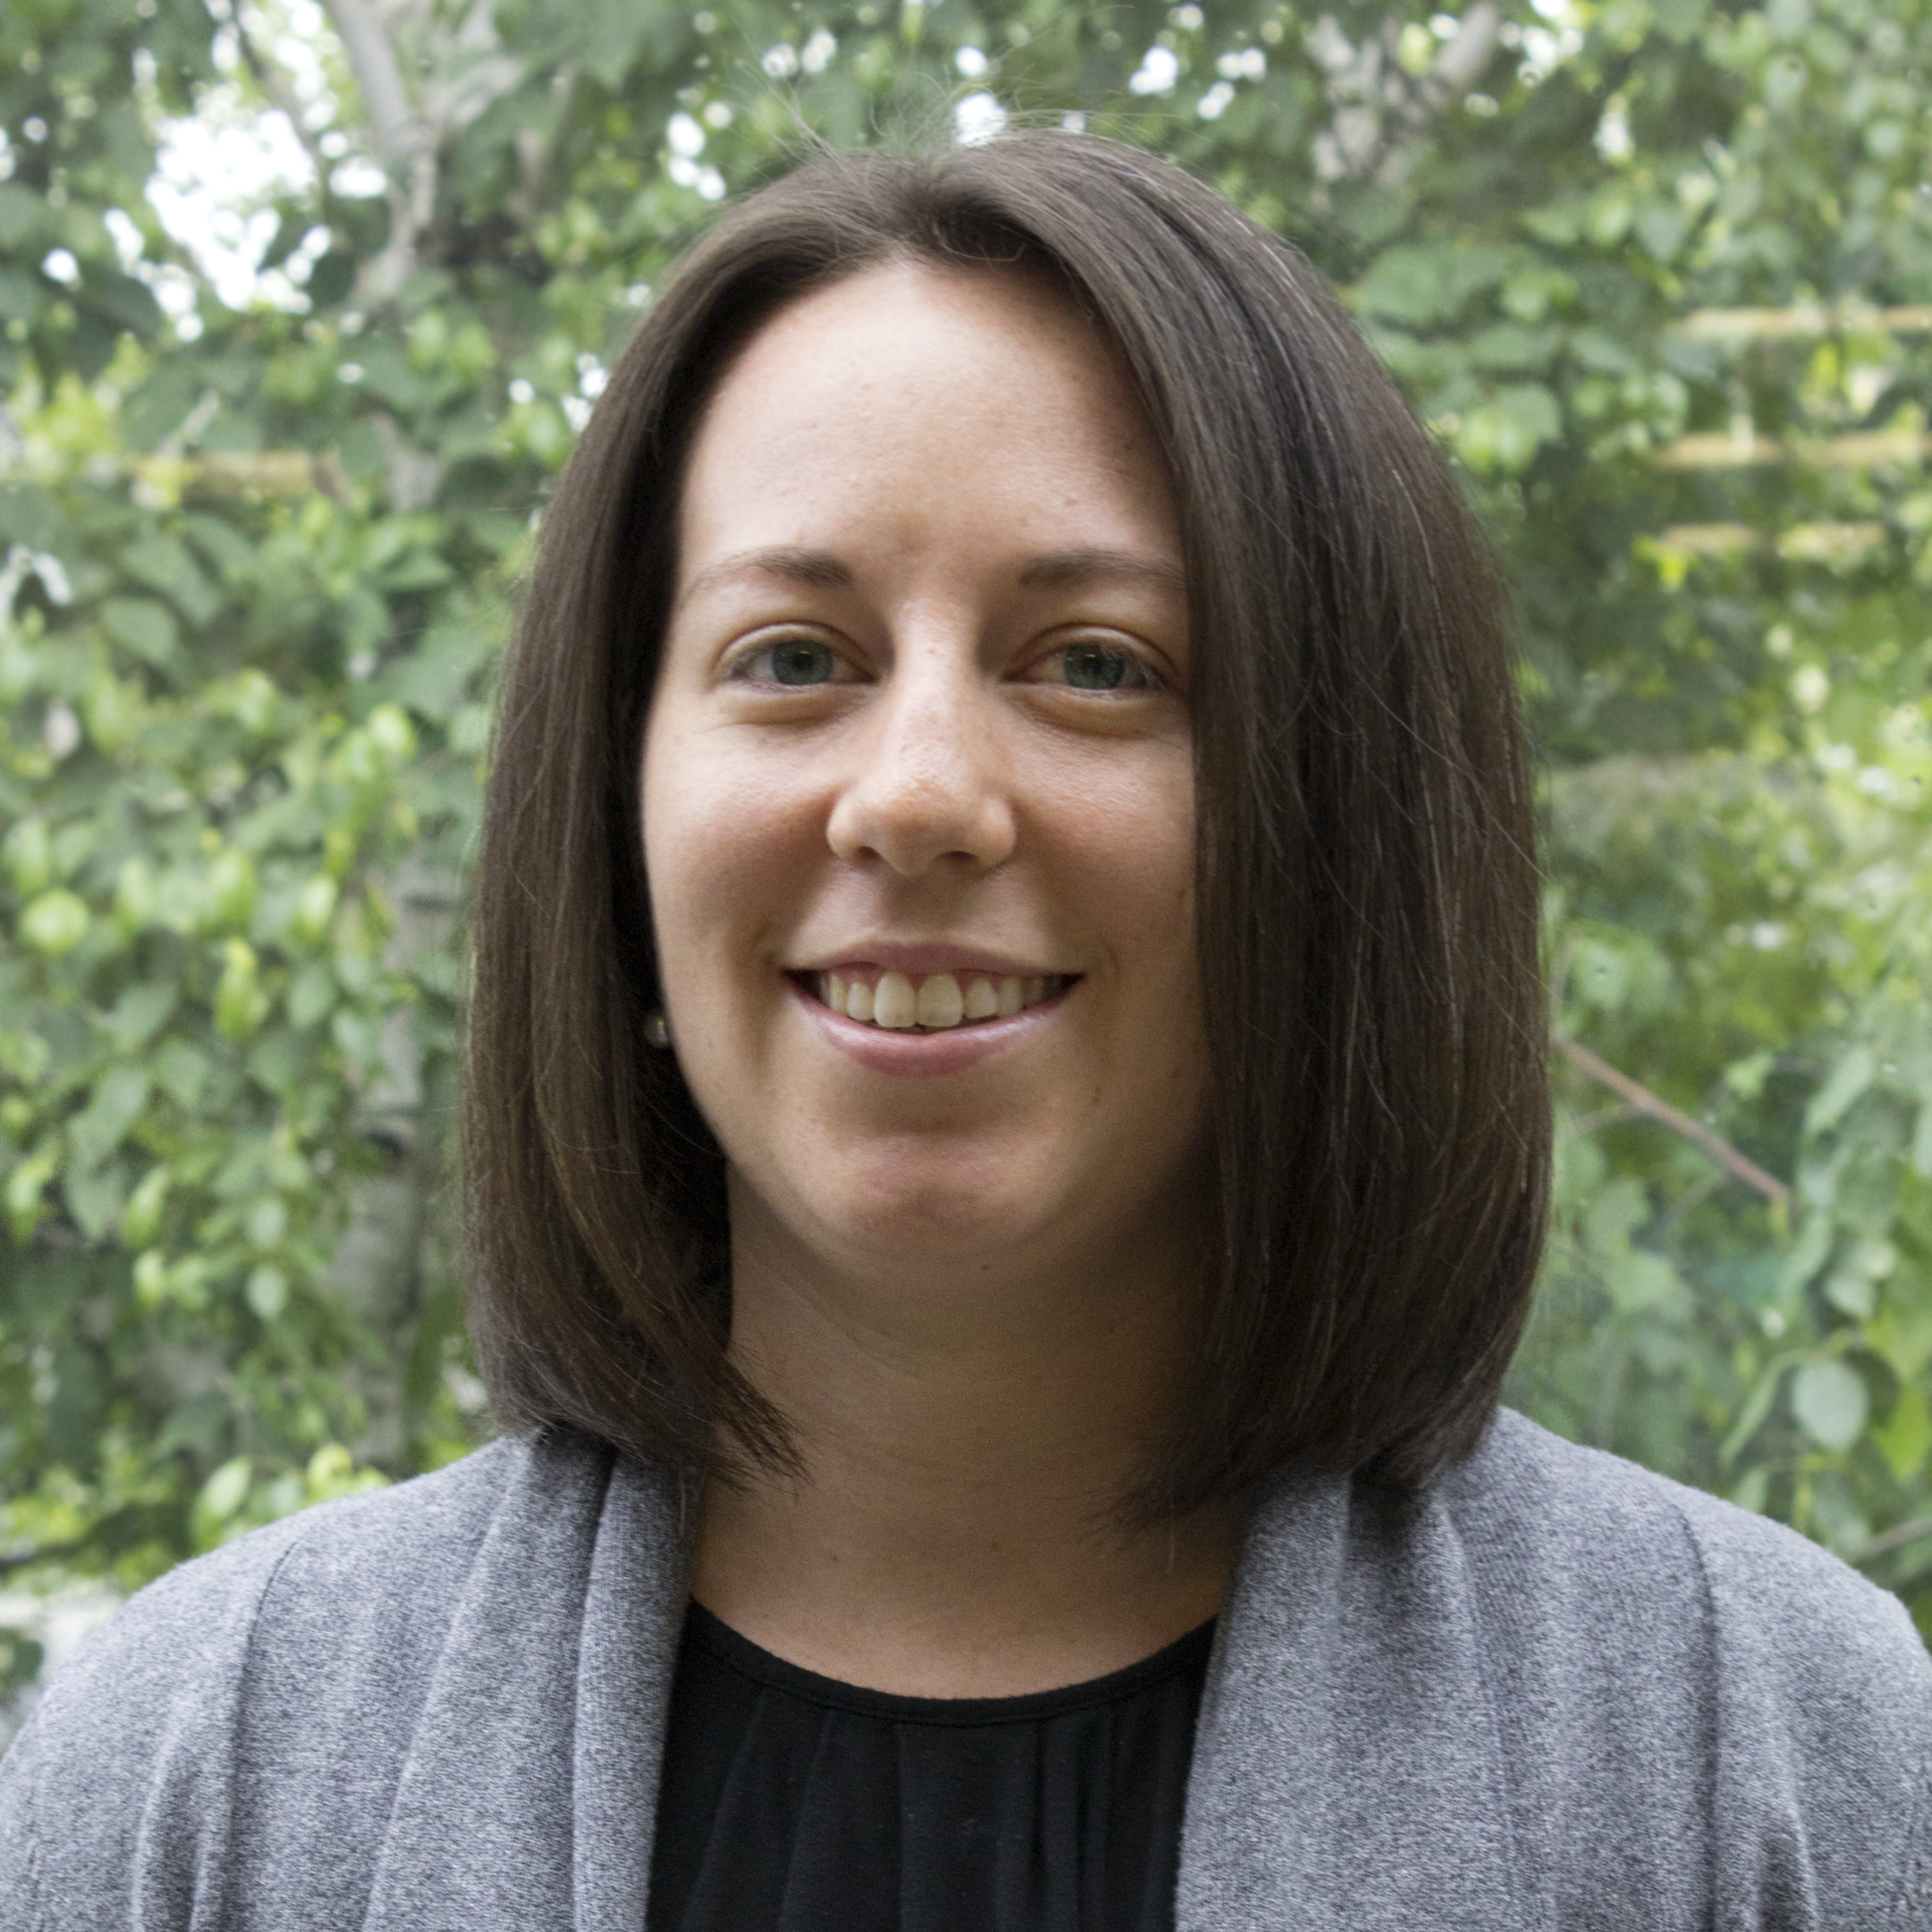 Meagan Ramsey, PhD -Manager, Proposal Development Unit - Meagan provides strategic research and proposal development consulting. She serves as the funding liaison on behalf of MCIRCC and provides team science coaching for research opportunities.maramsey@umich.edu